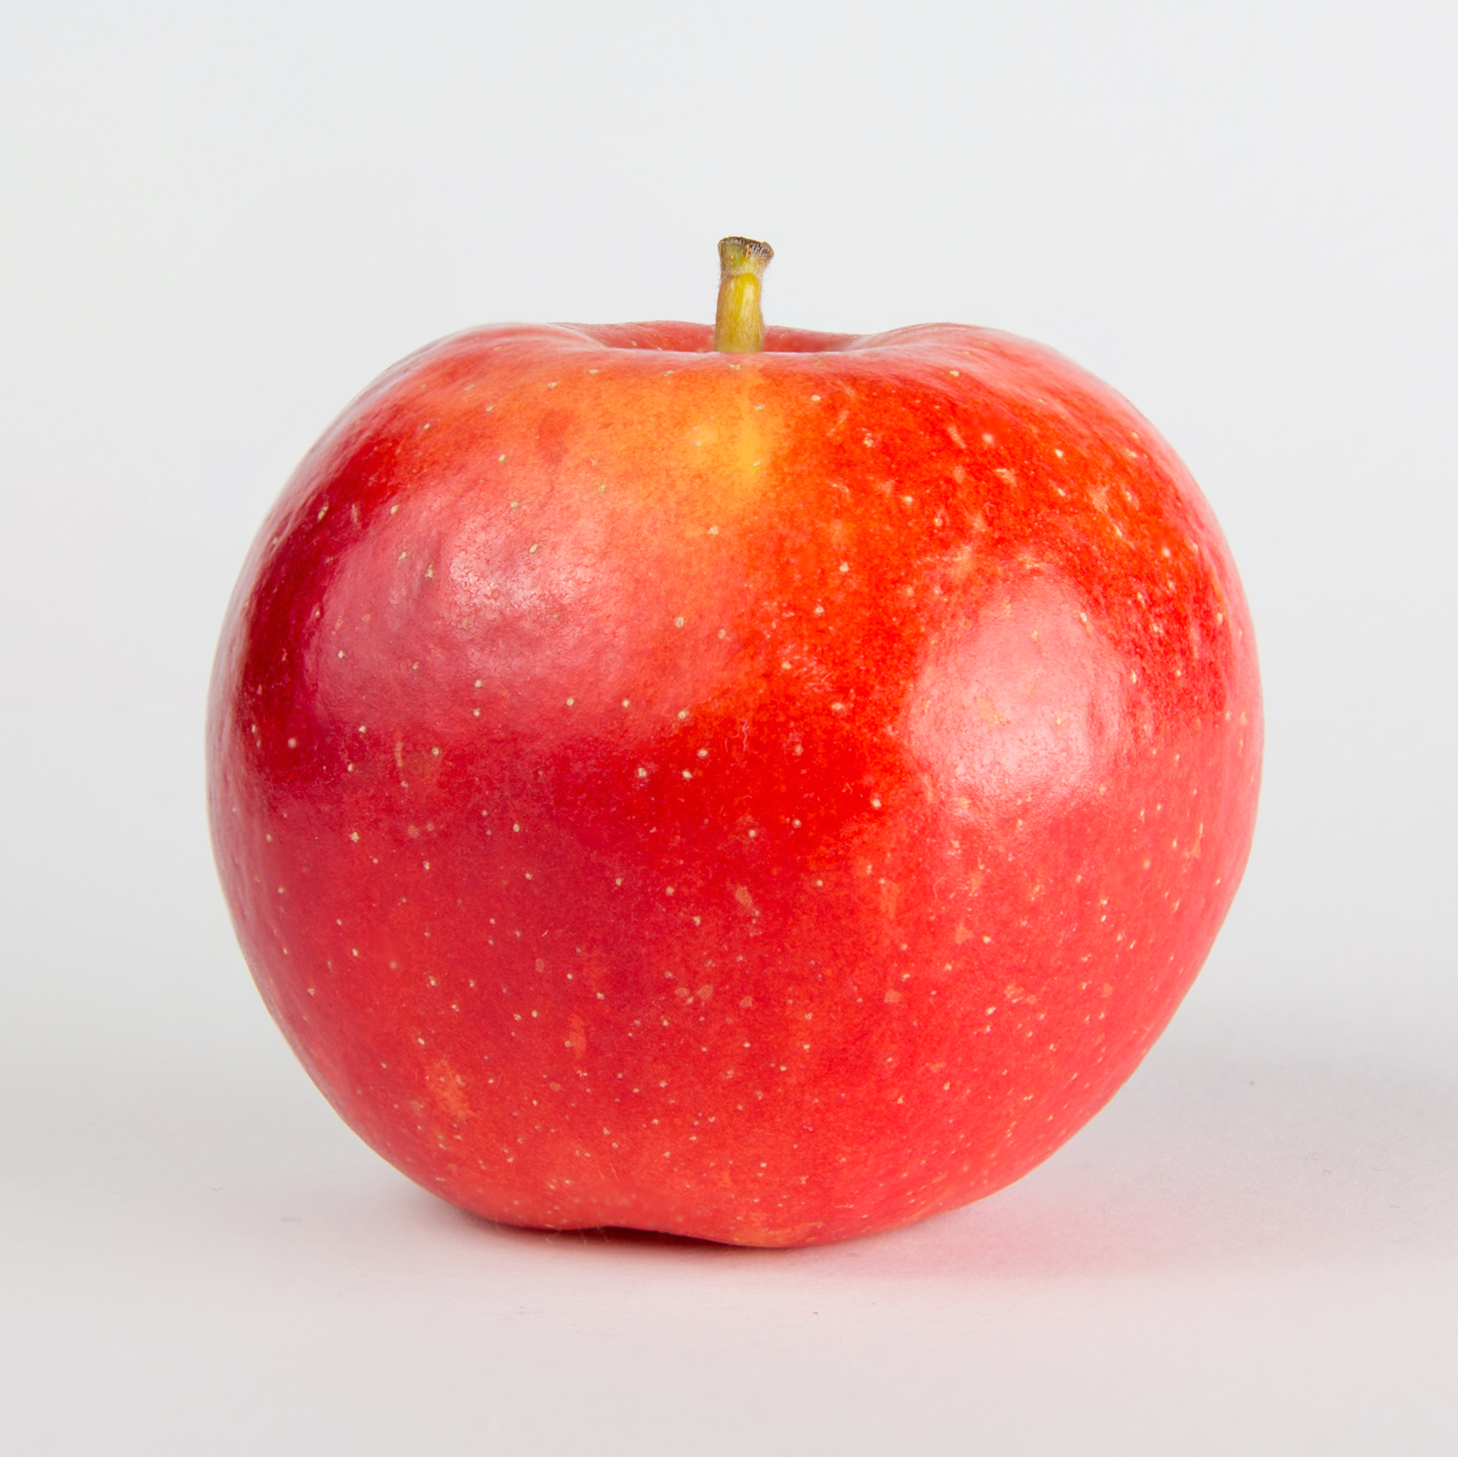 H8707,  nicknamed 'Red Flame' this apple has scored highly in testing due to its flavour